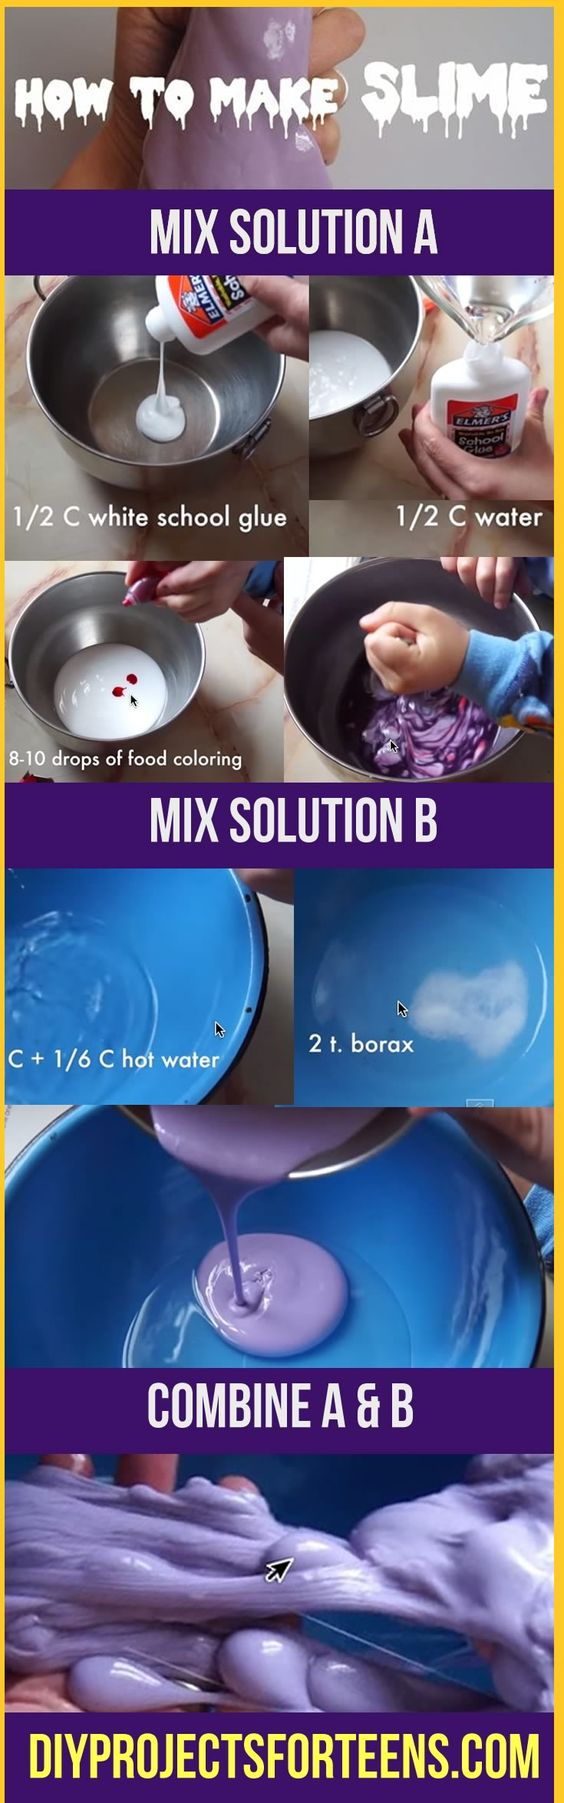 Fun DIY Projects | How To Make Slime Tutorial | Cool Crafts Ideas for Teens and Tweens